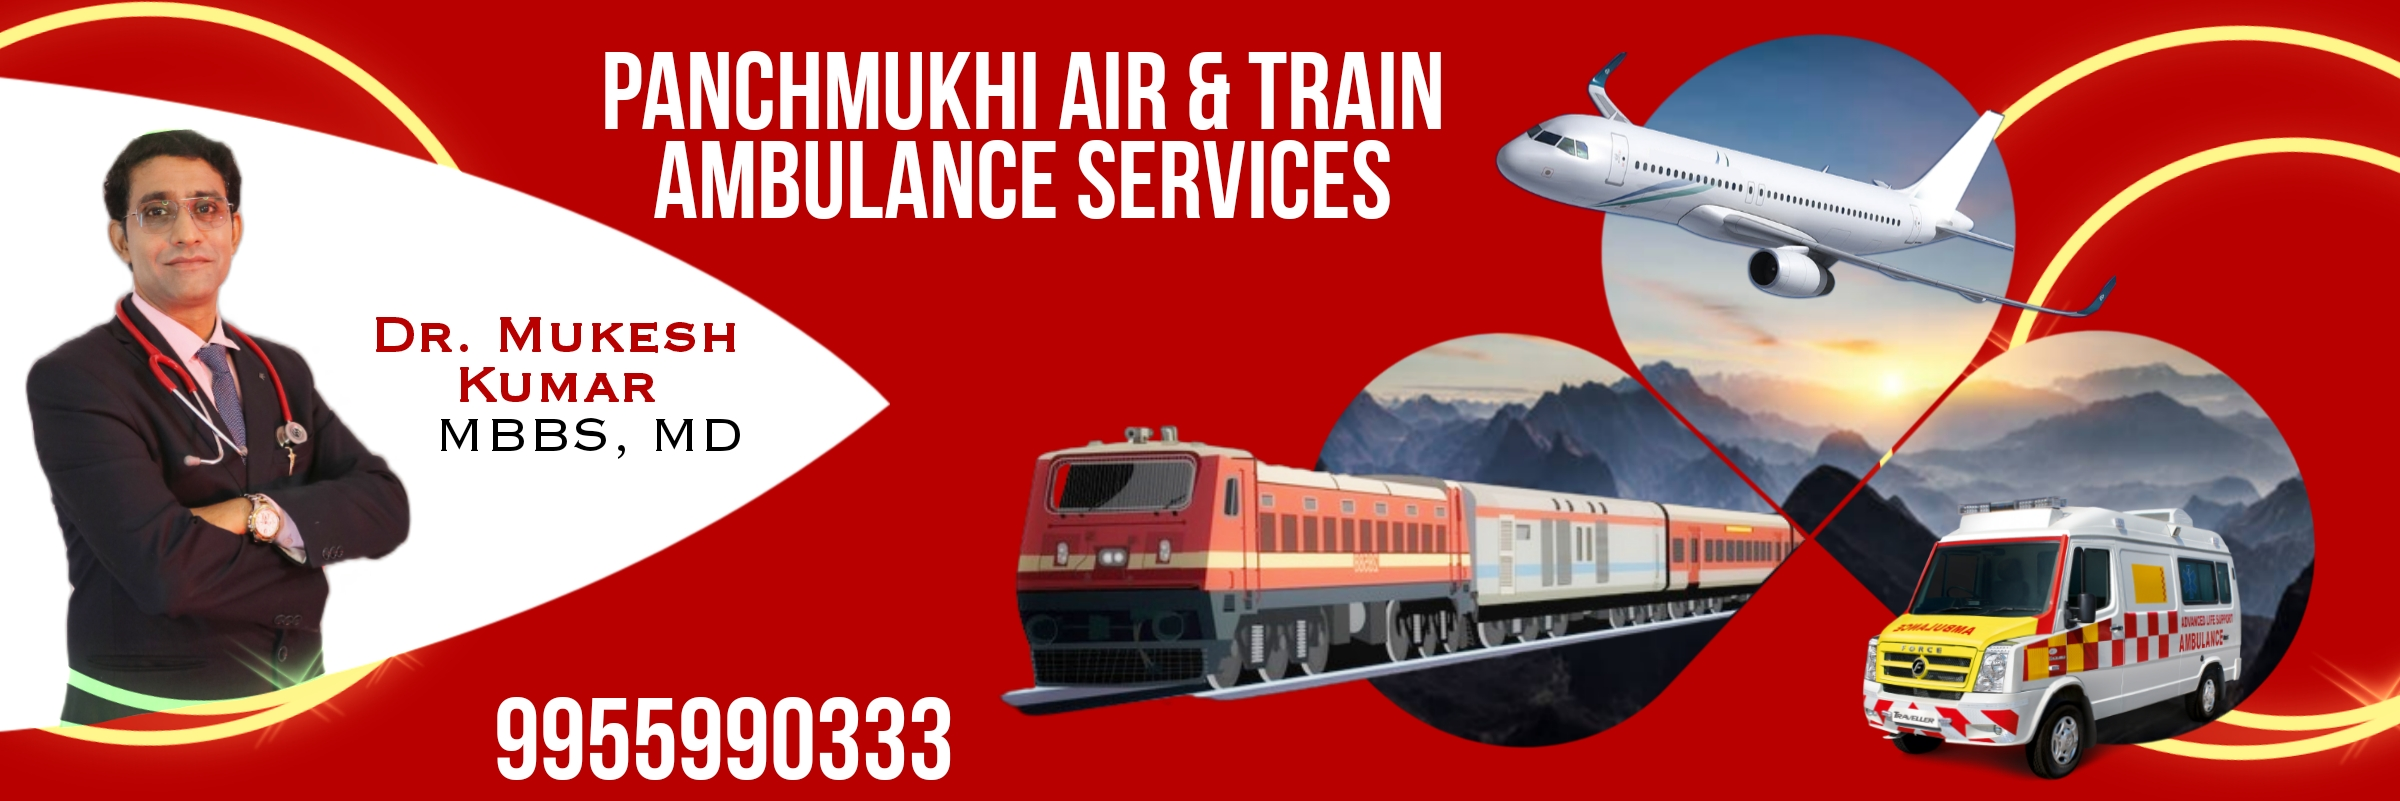 Panchmukhi Air Ambulance Services in Silchar, Train